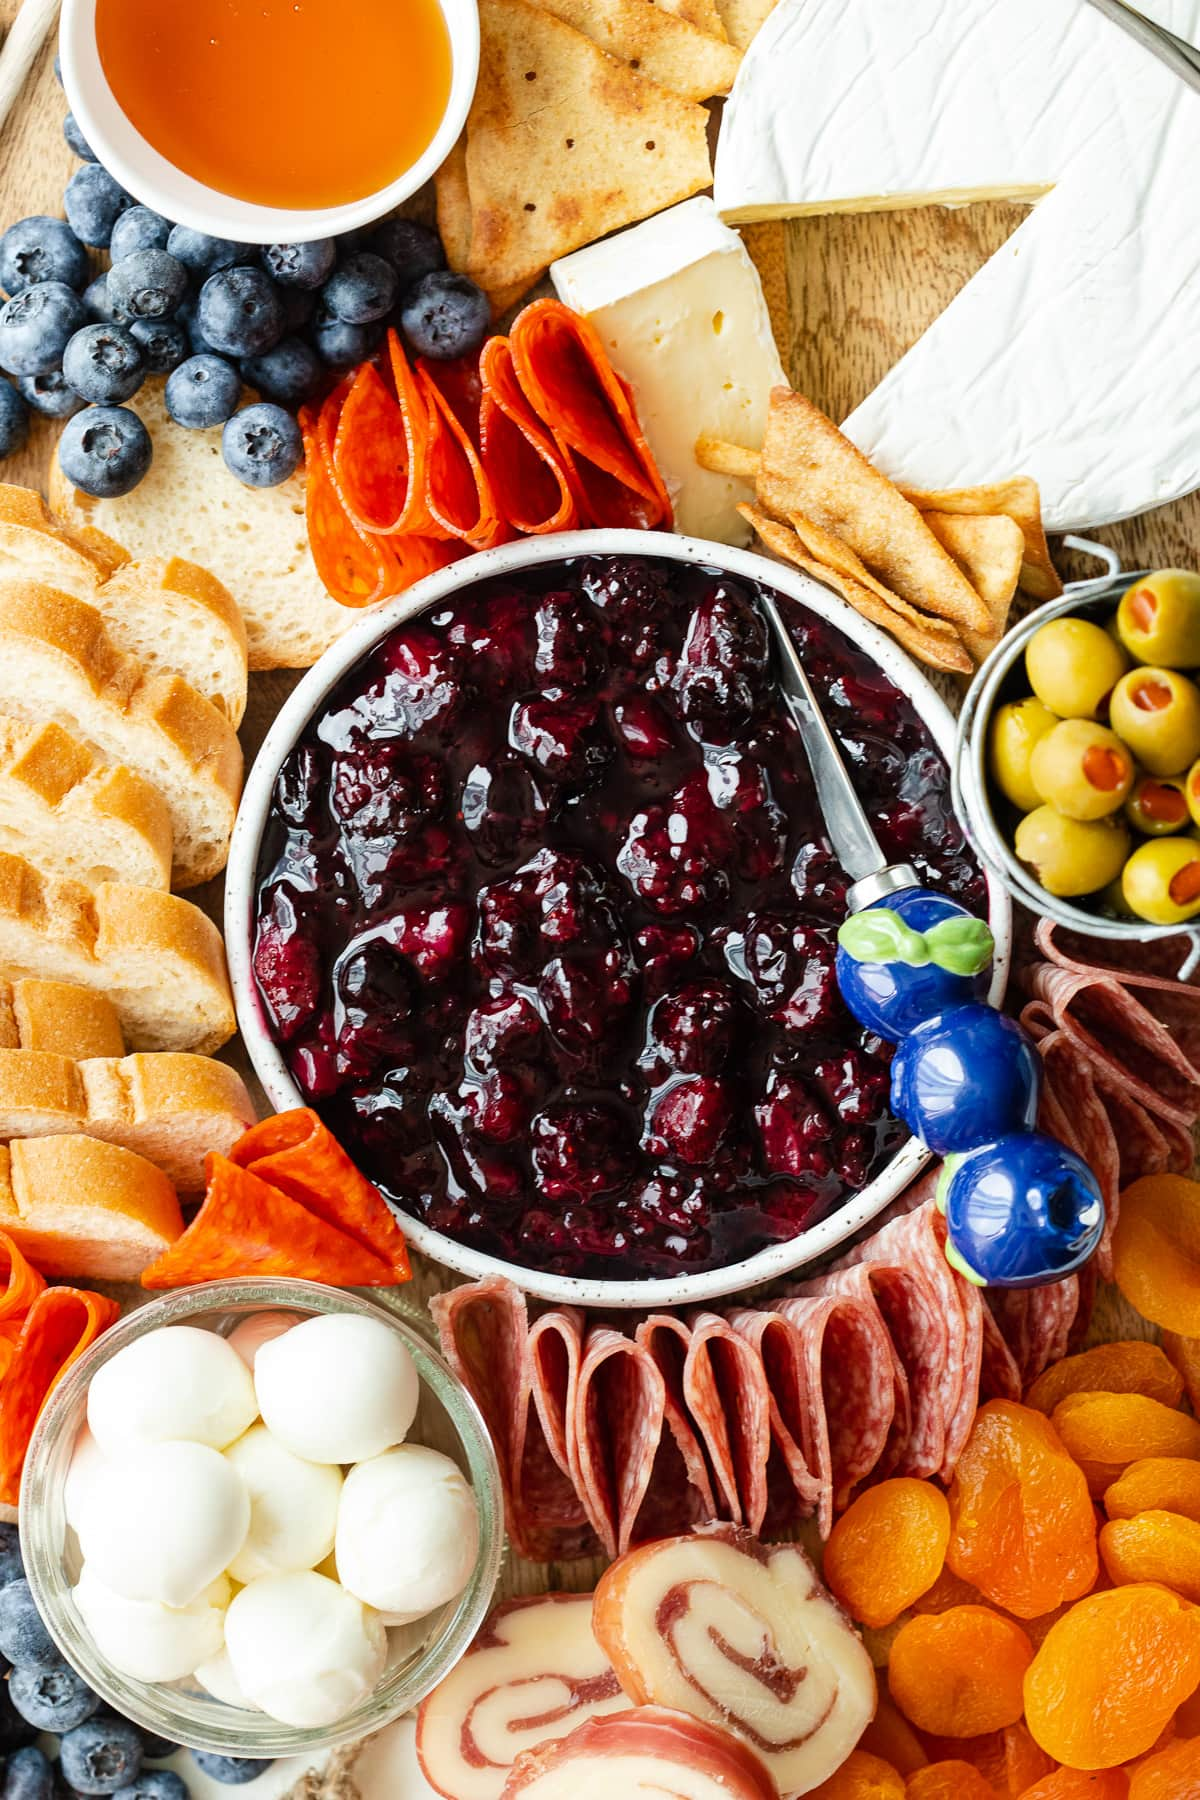 Close up of a charcuterie board with a bowl of berry compote in the center.